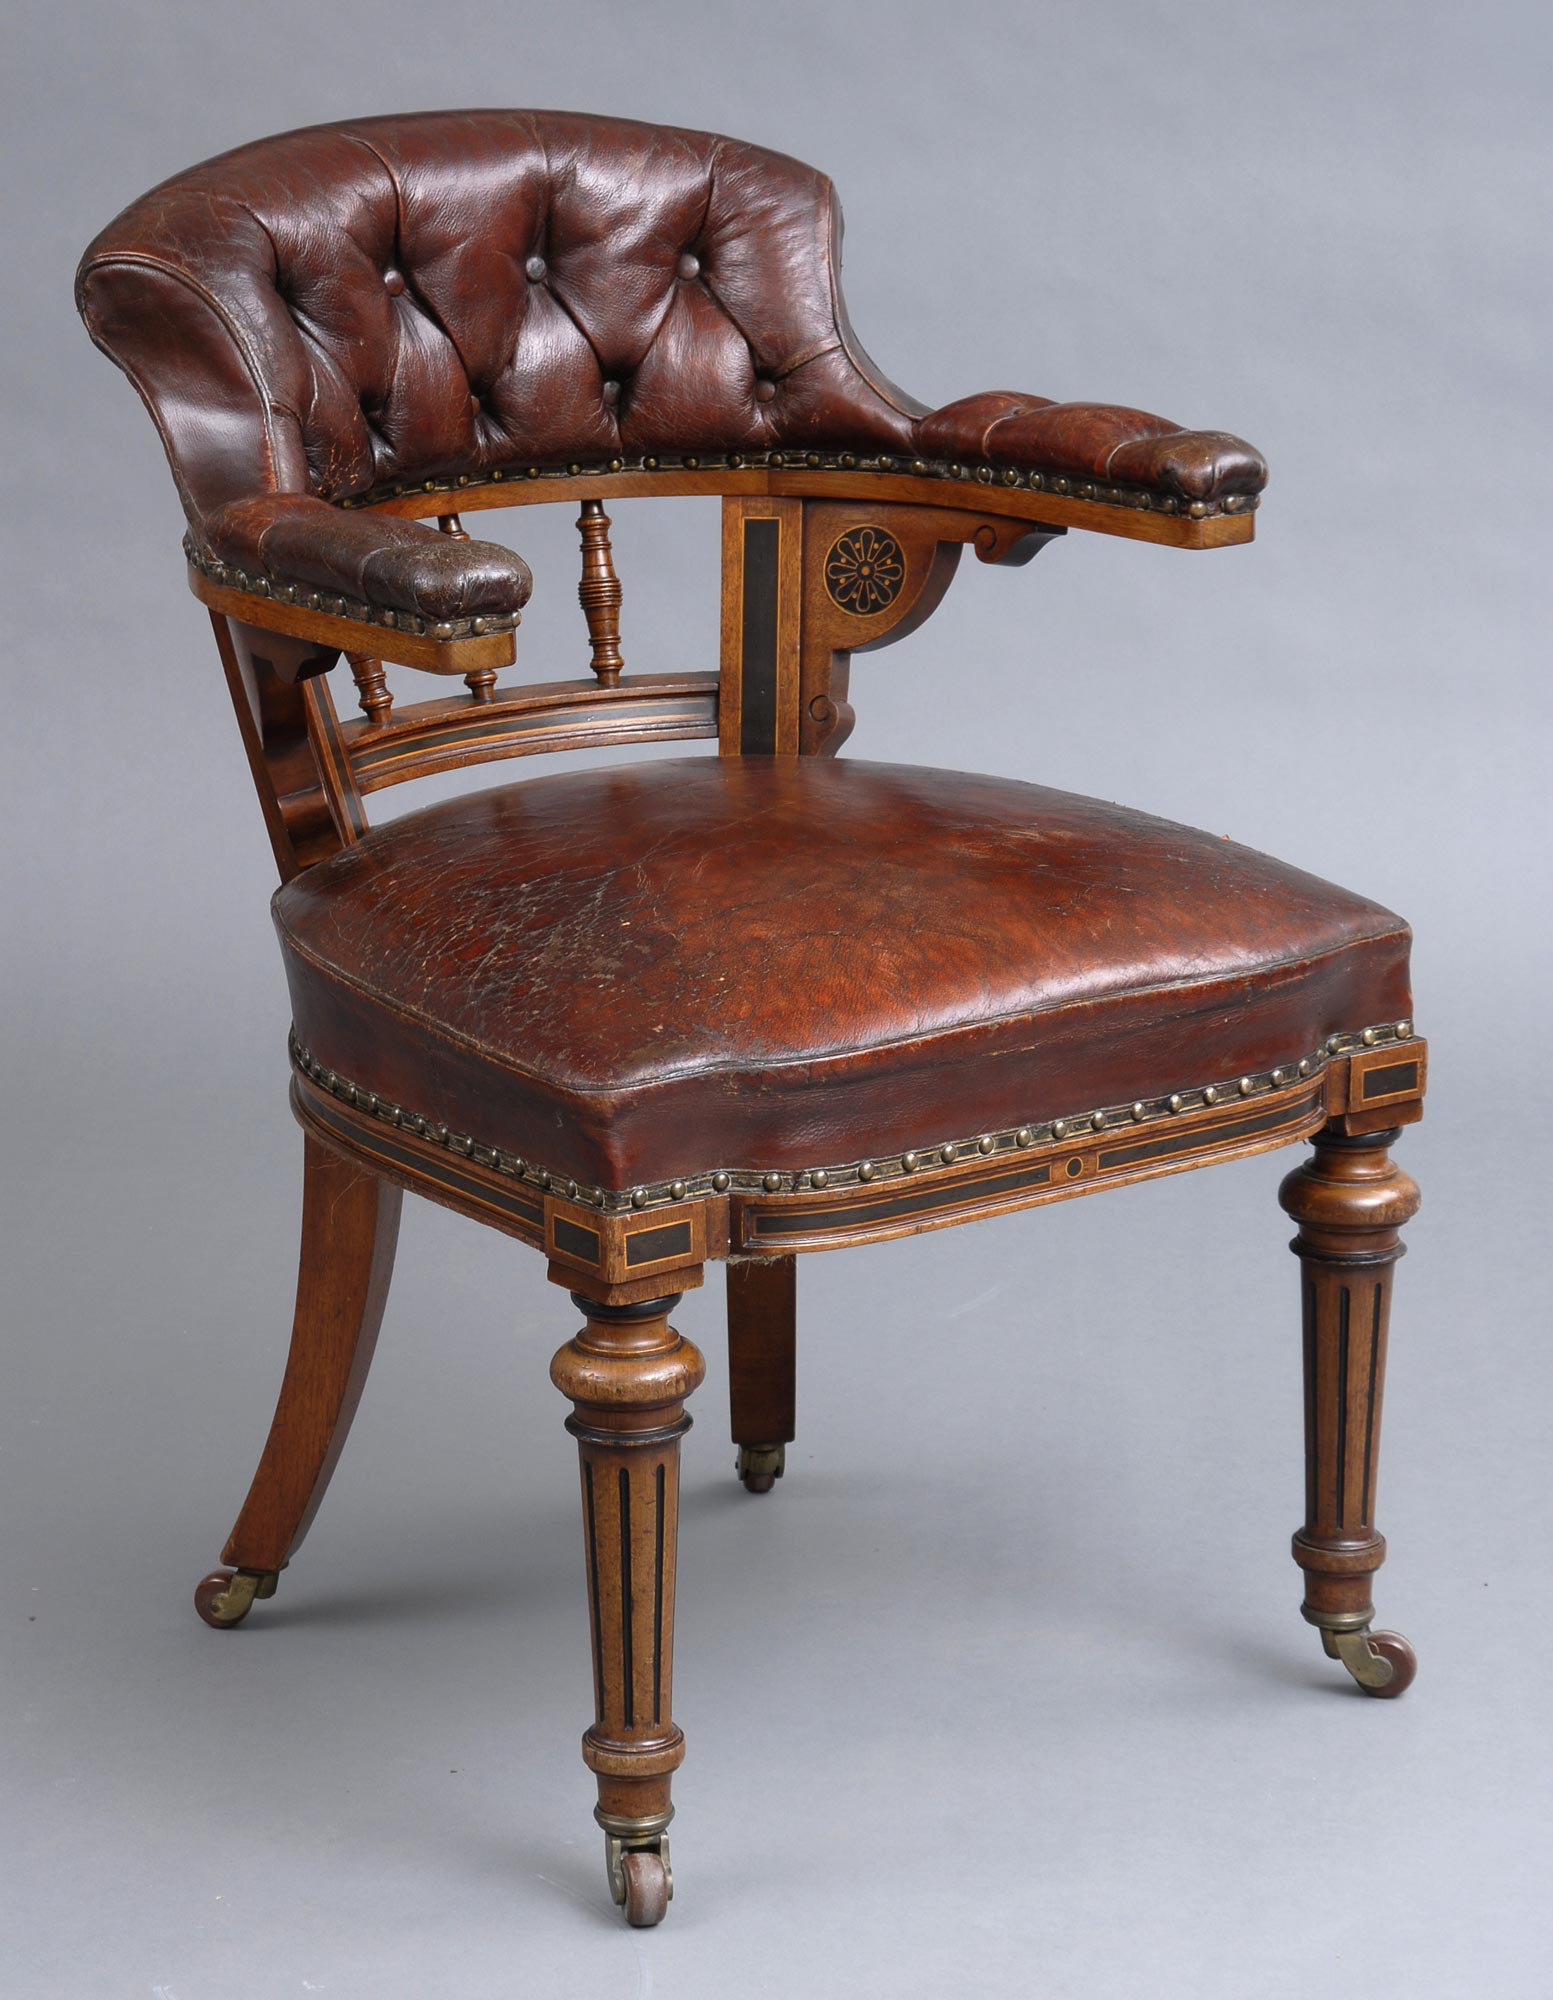 Superieur English Antique Victorian Oak U0026 Leather Desk Chair By Marsh, Jones U0026 Cribb,  Circa